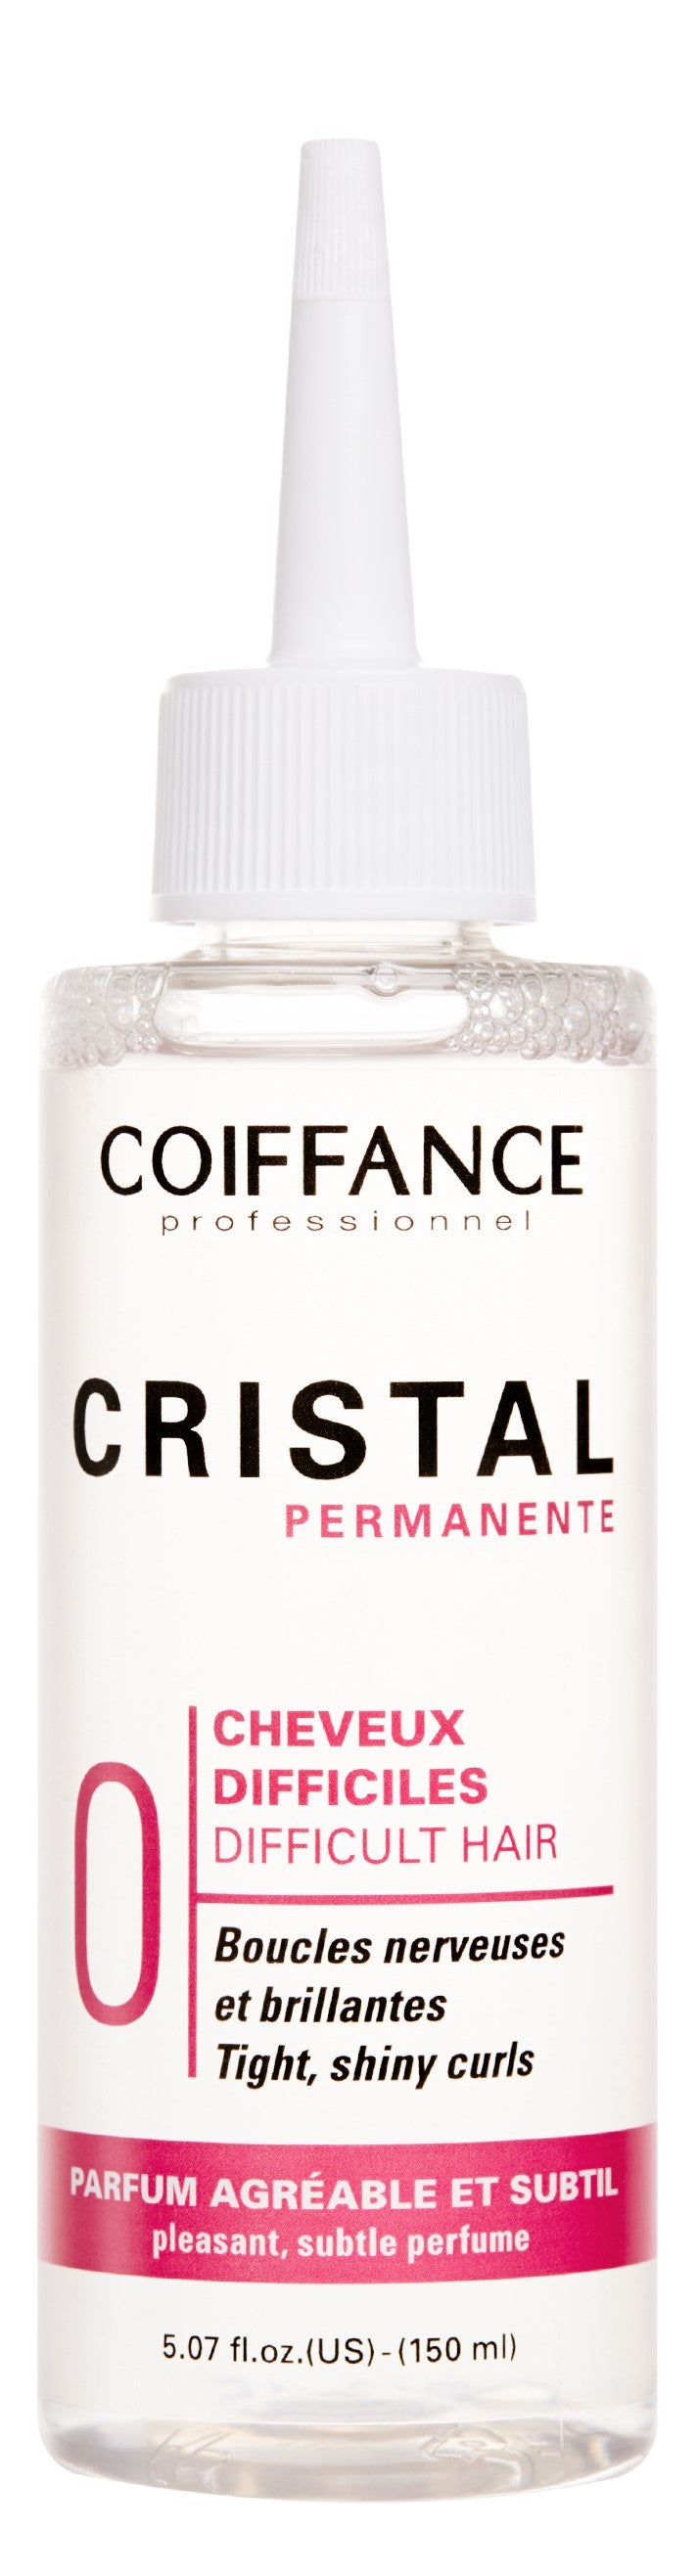 Coiffance -  Cristal Perm force 0 -  resistant hair 150ML